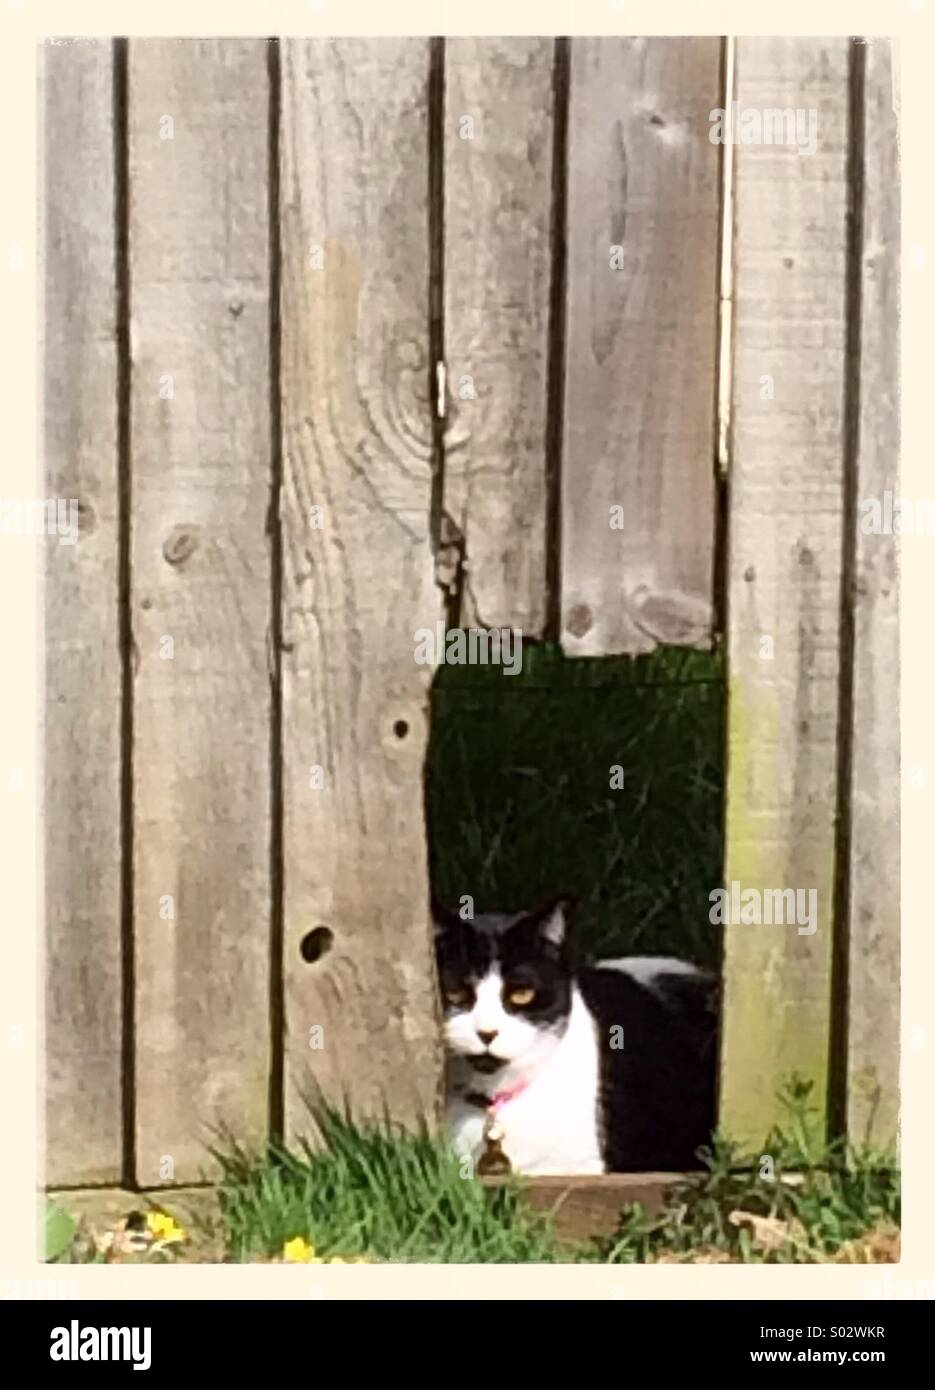 Cat looking through a whole in a wooden fence - Stock Image